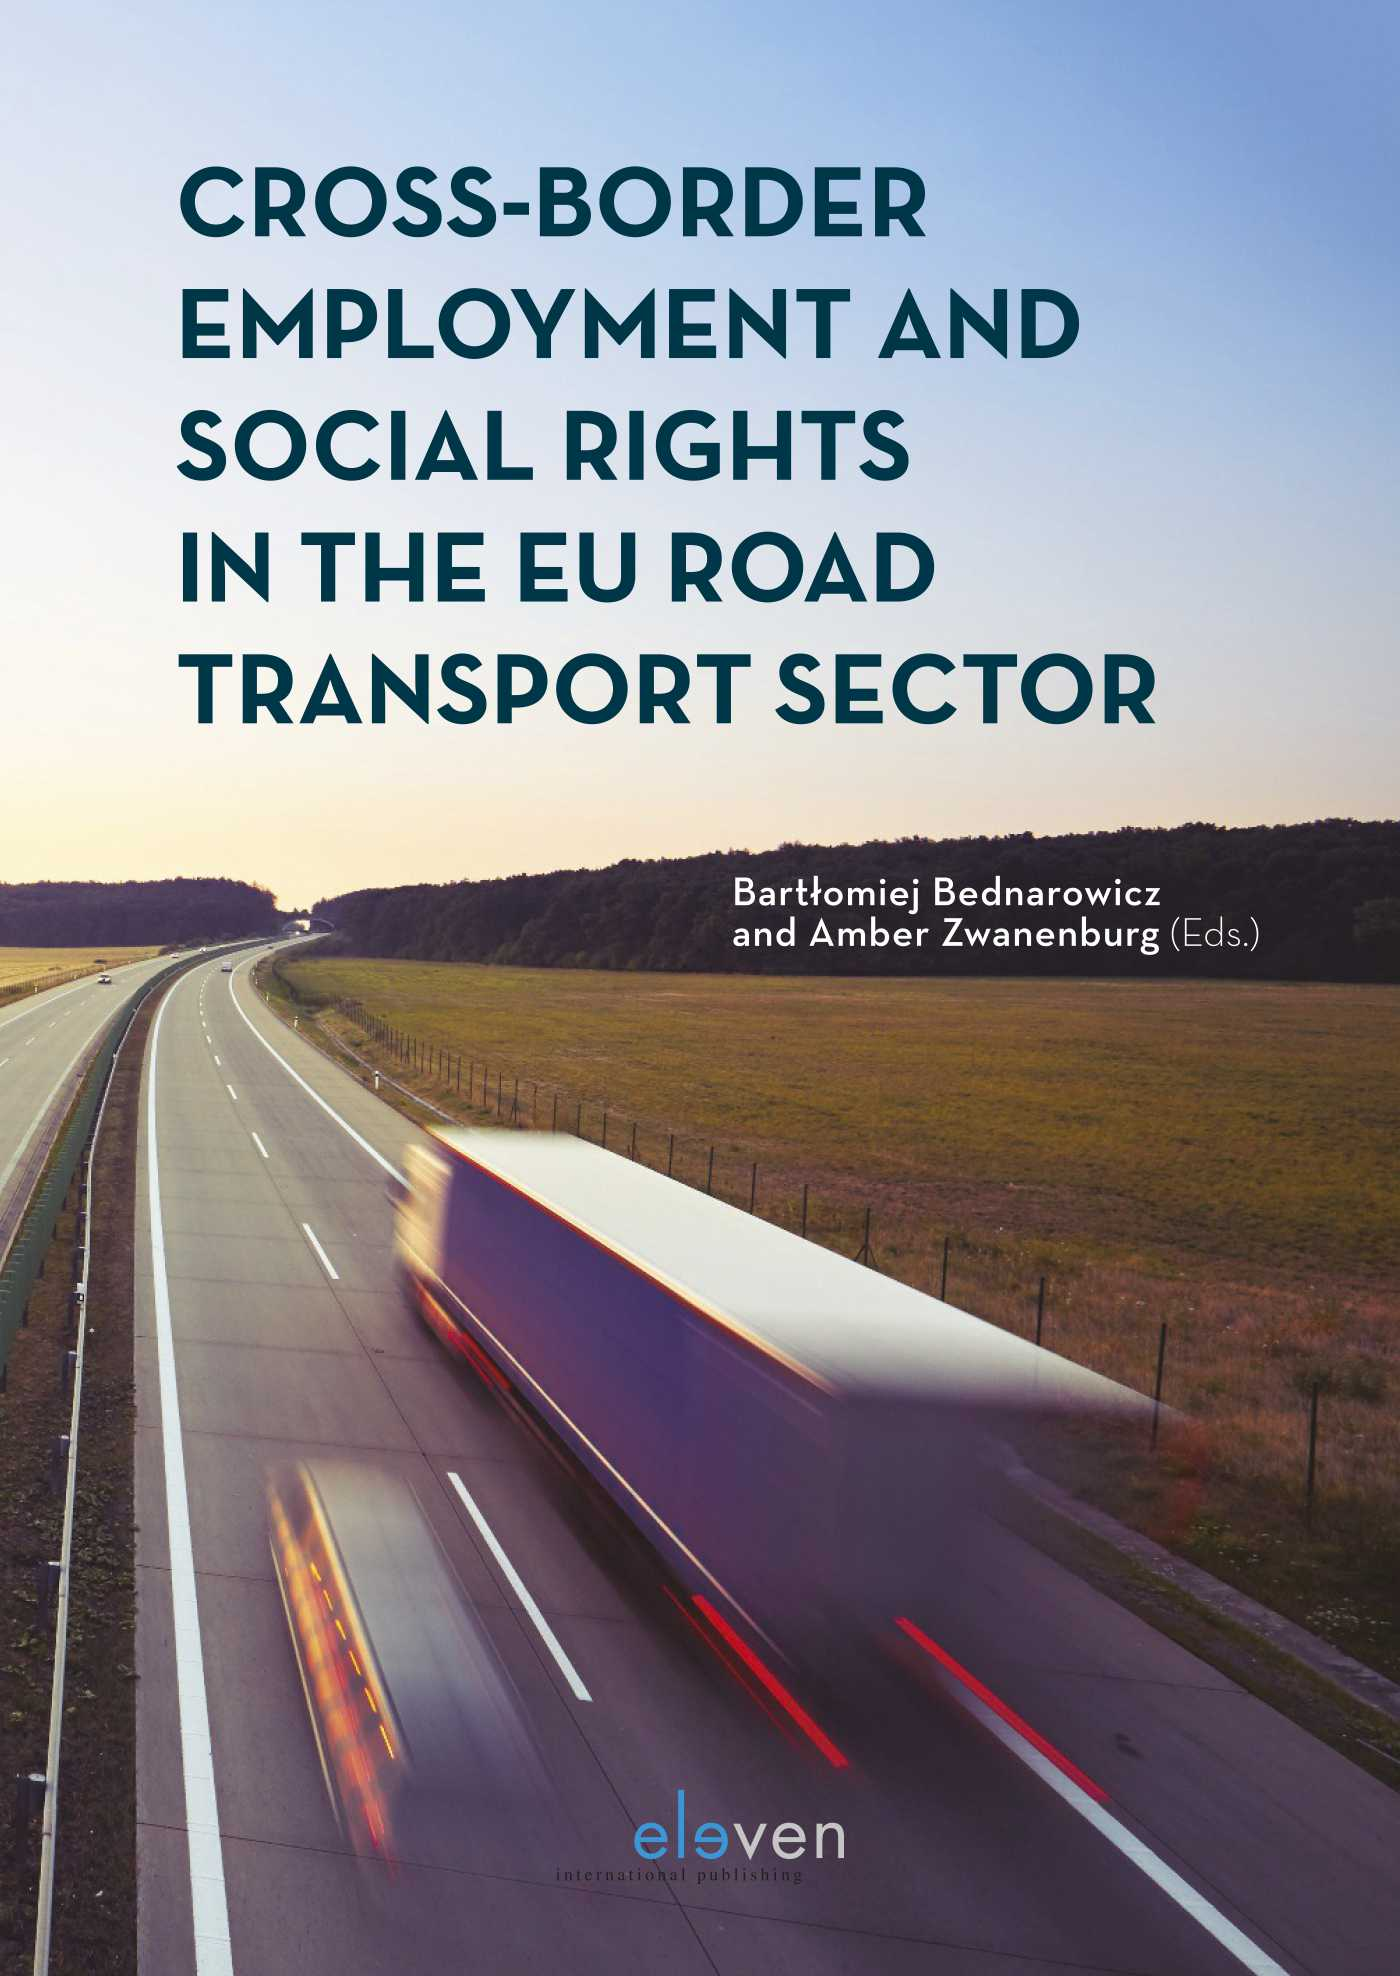 Cross-Border Employment and Social Rights in the EU Road Transport Sector